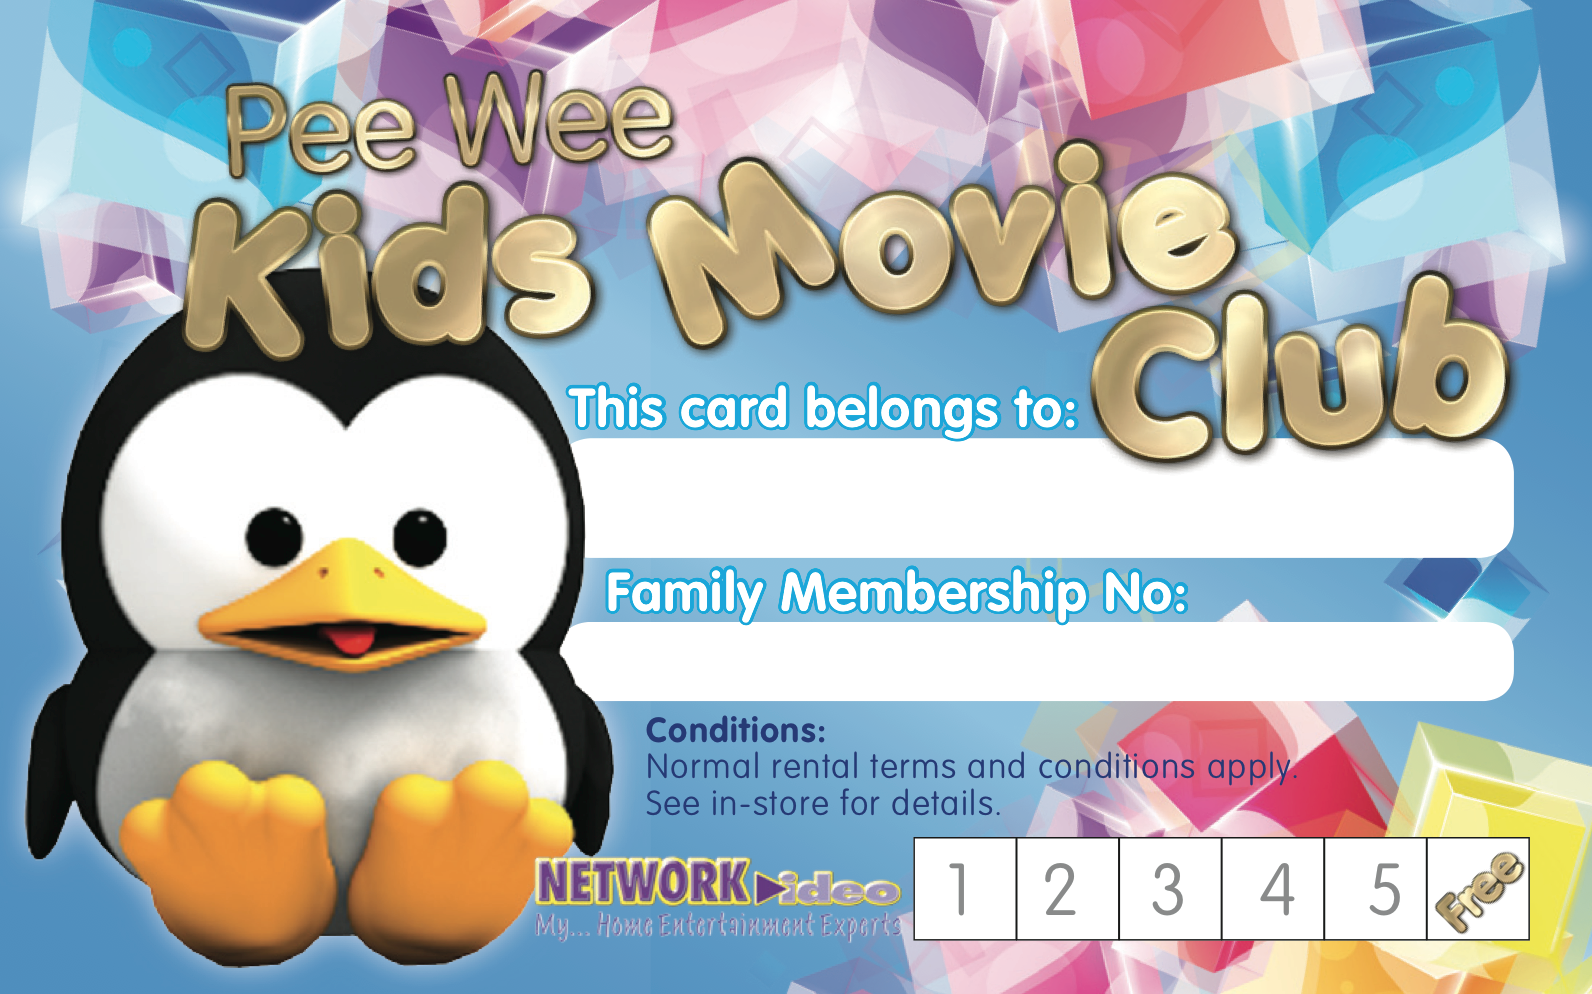 Kids Movie Club Network Video Card back